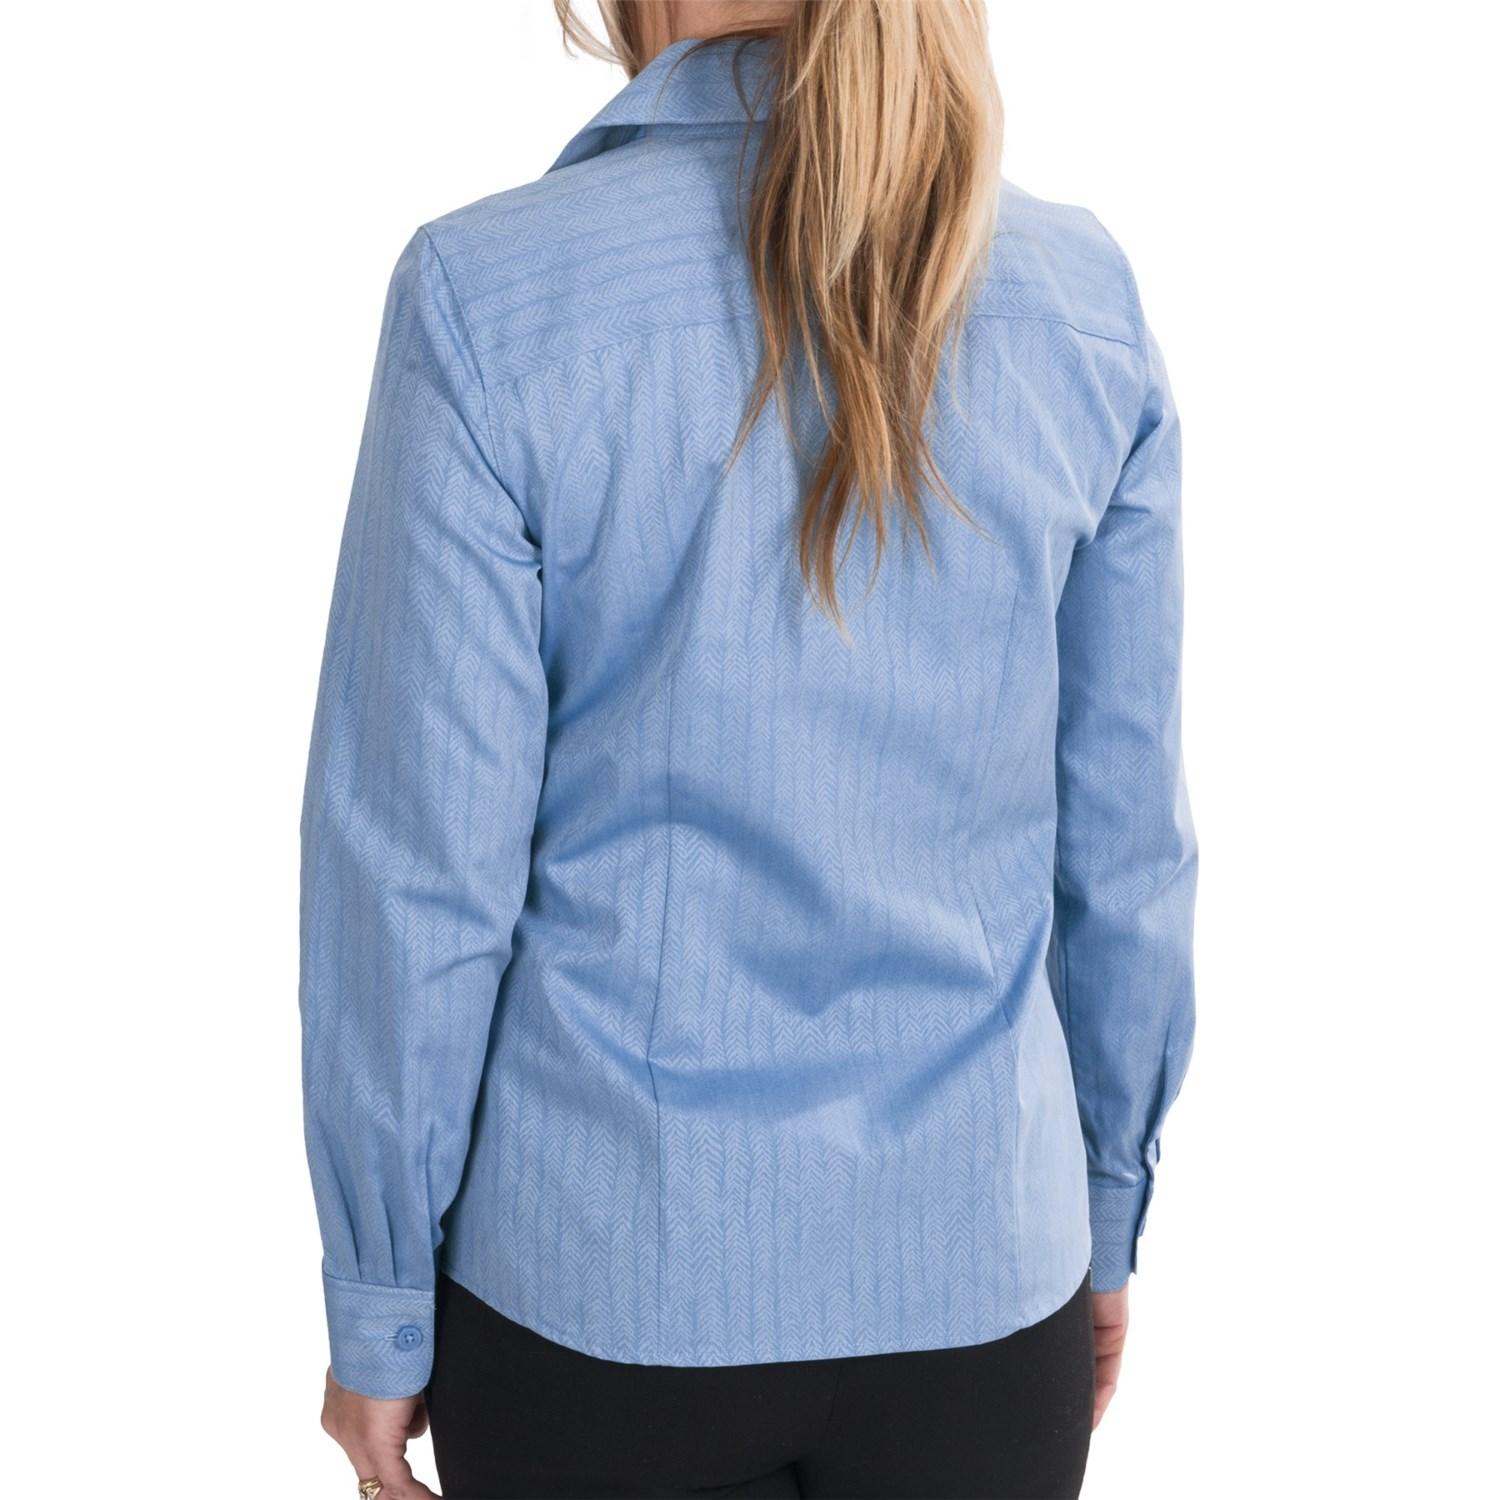 Foxcroft wrinkle free cotton herringbone shirt for women Wrinkle free shirts for women